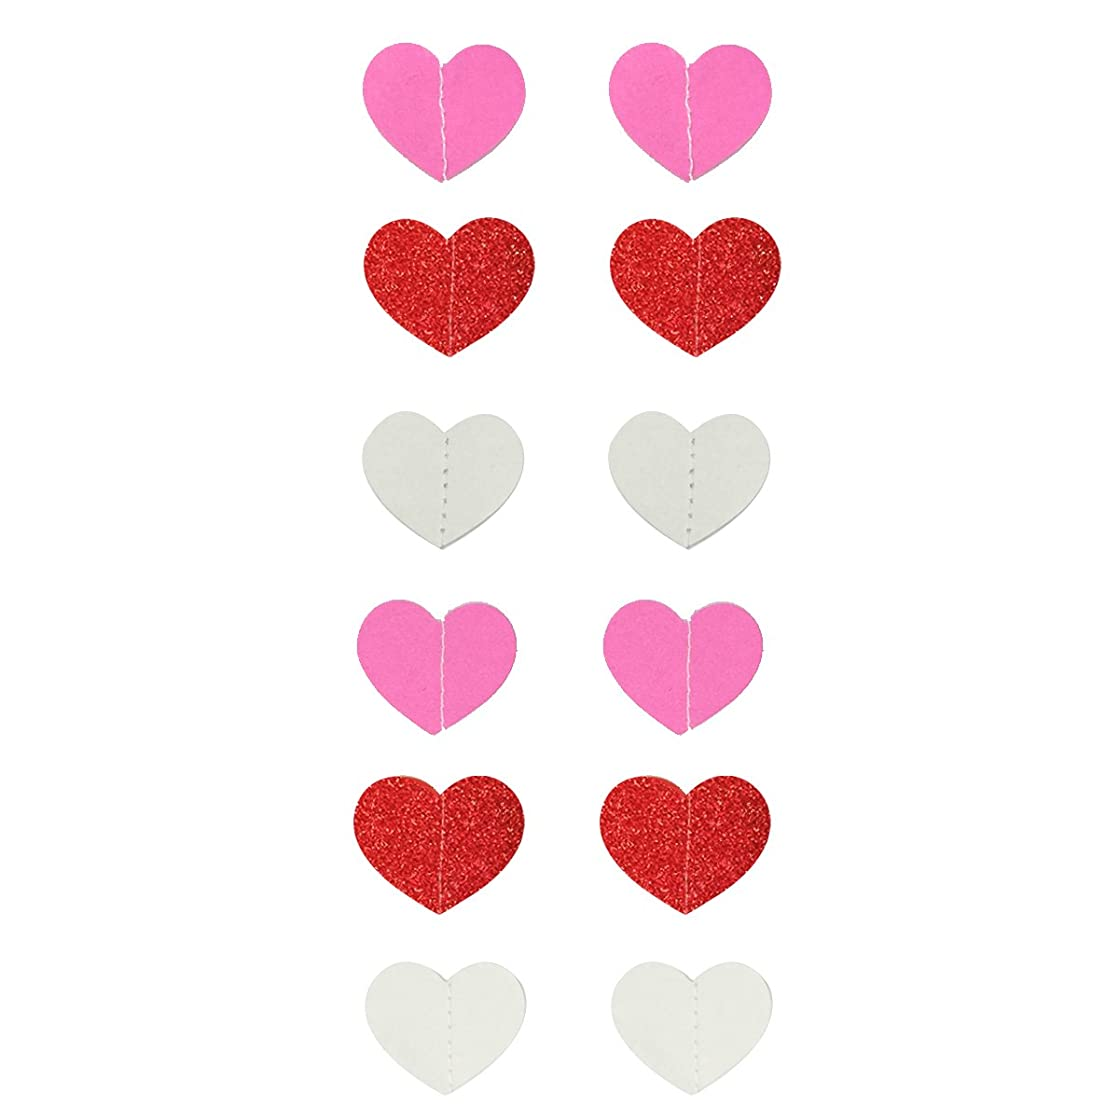 Wrapables 26ft Total Paper Heart Garland Weddings, Birthday Parties, Baby Showers, and Nursery Decor (Set of 2), Pink/Red/White